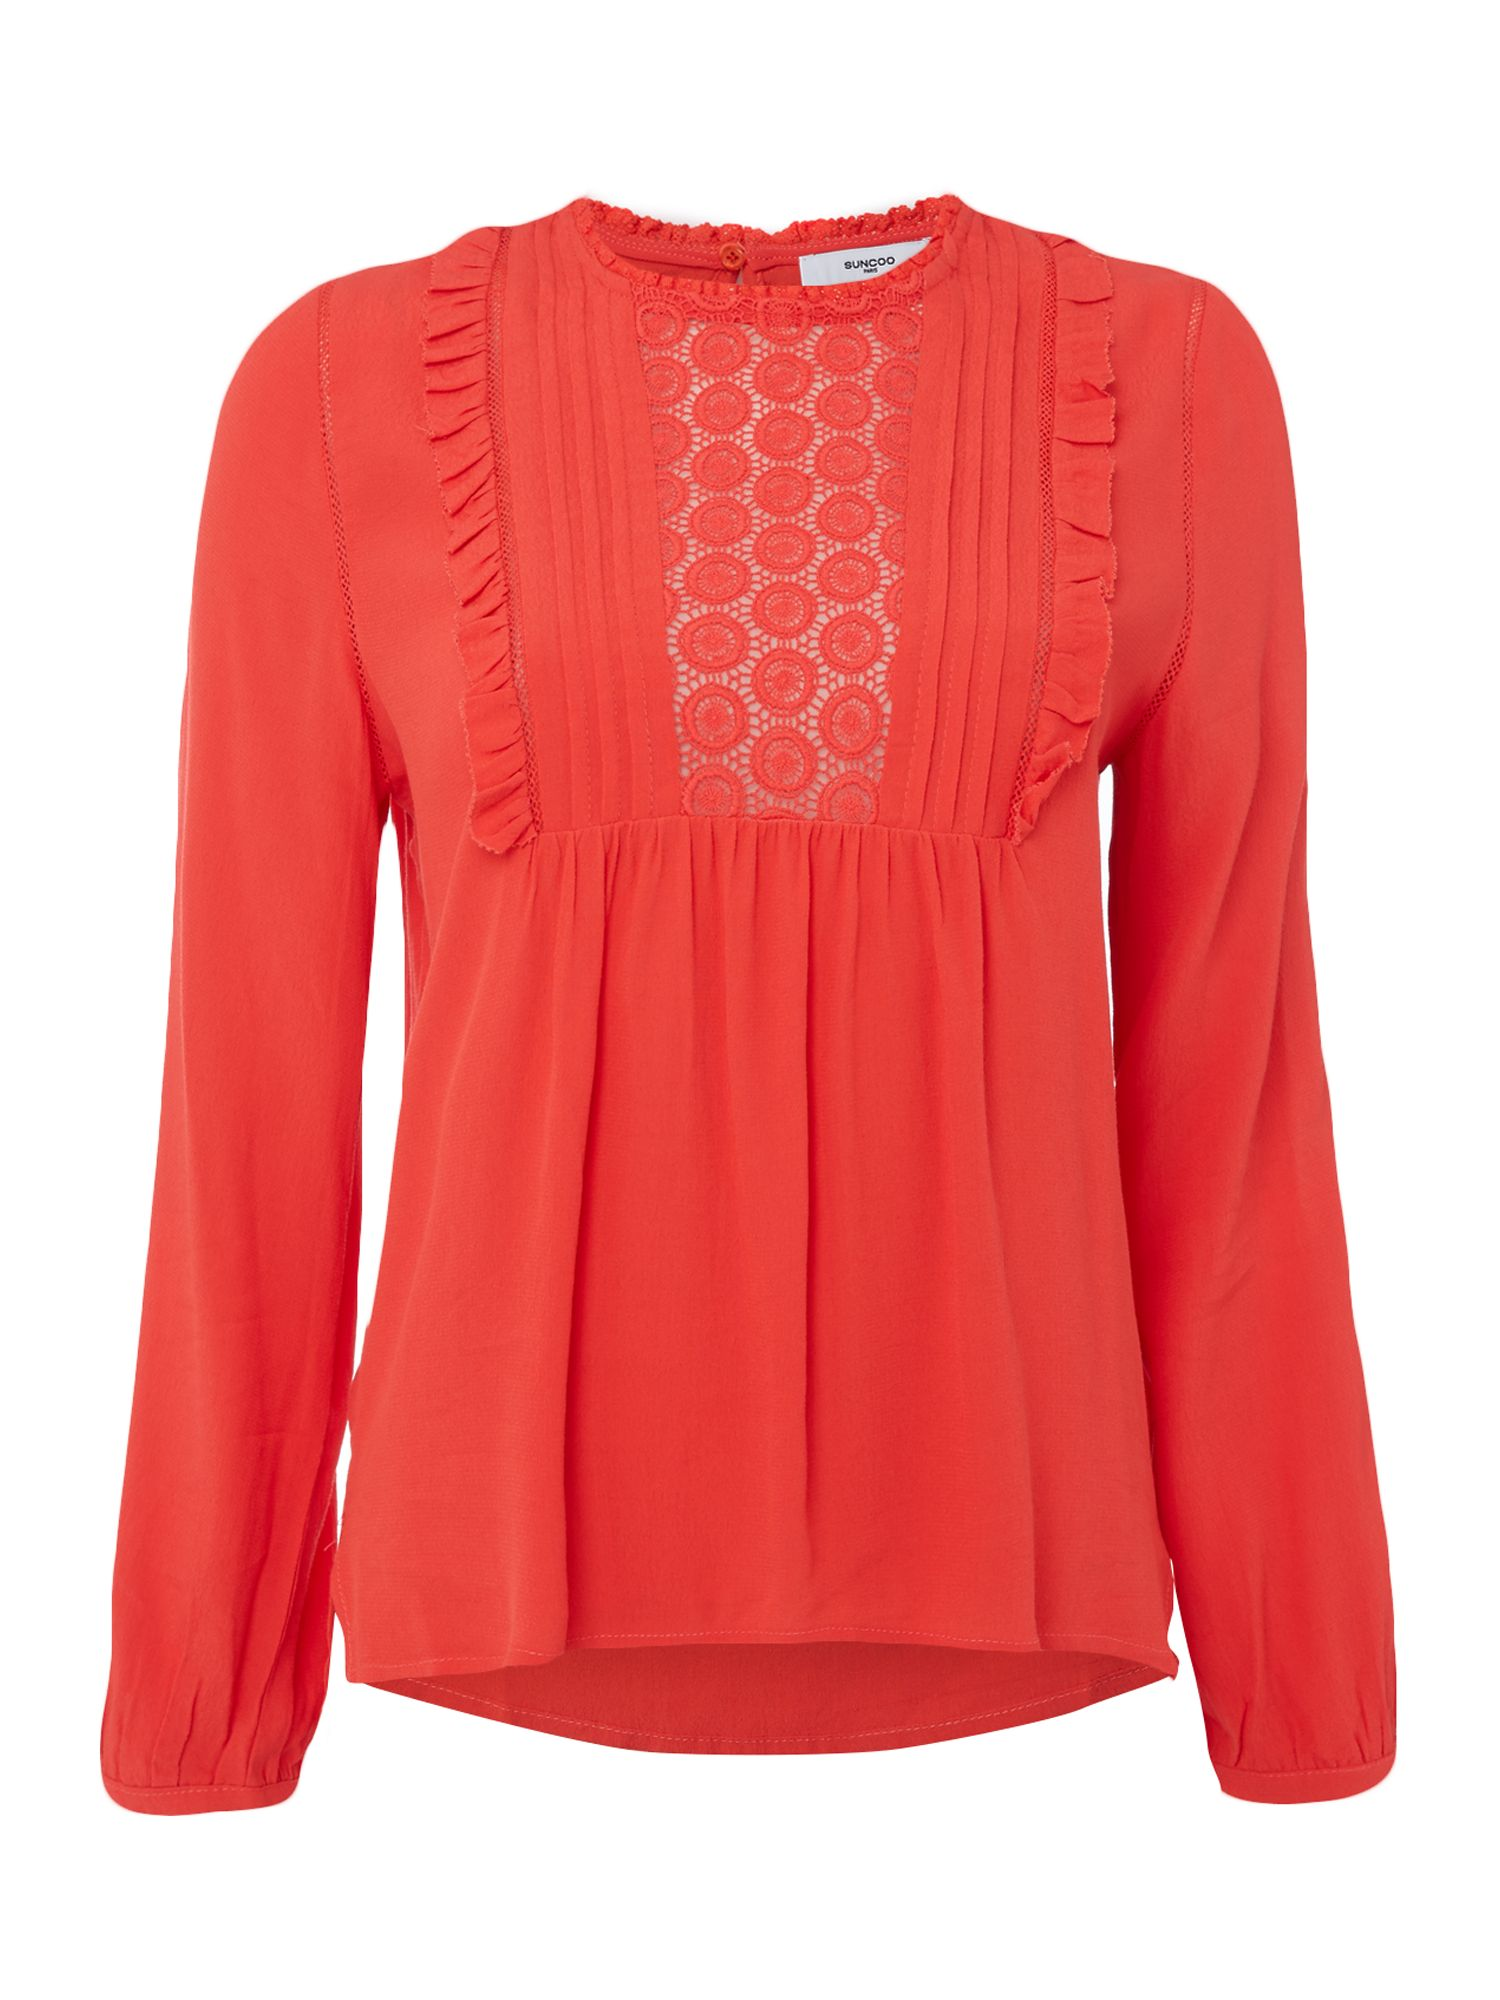 Suncoo Louise Crochet Blouse, Red